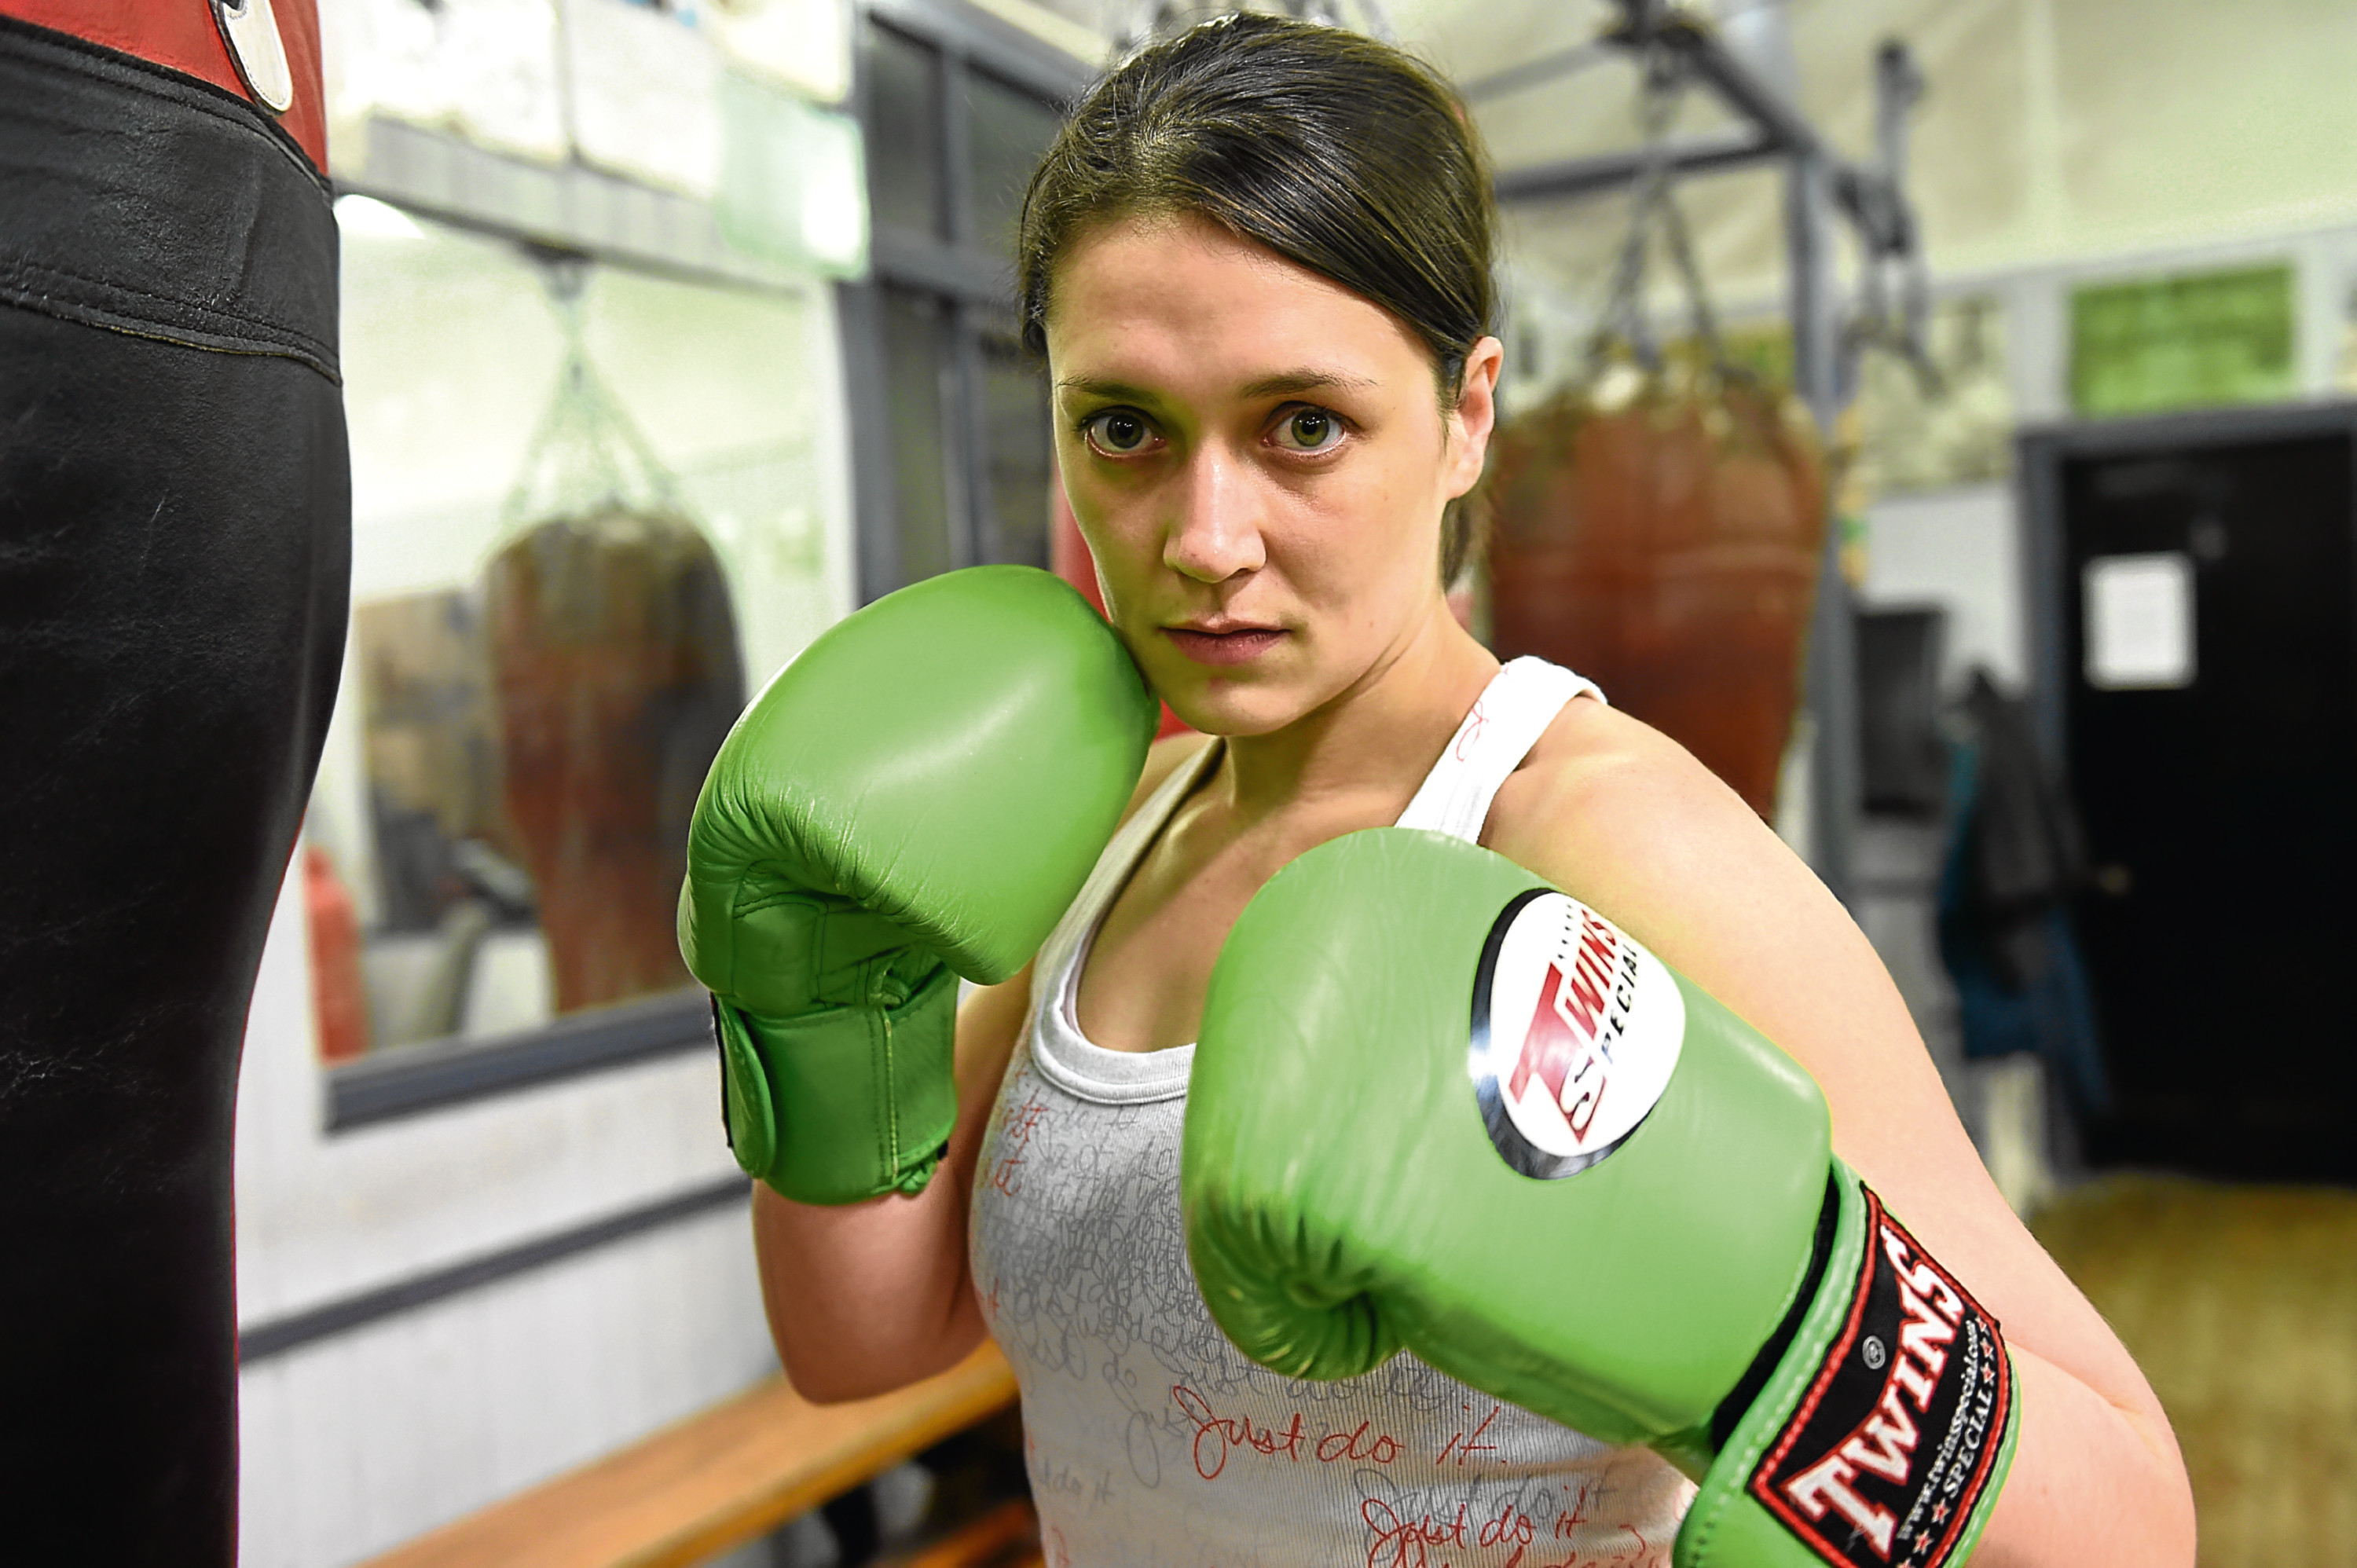 Pictured is Scotland's first female professional boxer Kristen Fraser. Picture by Darrell Benns